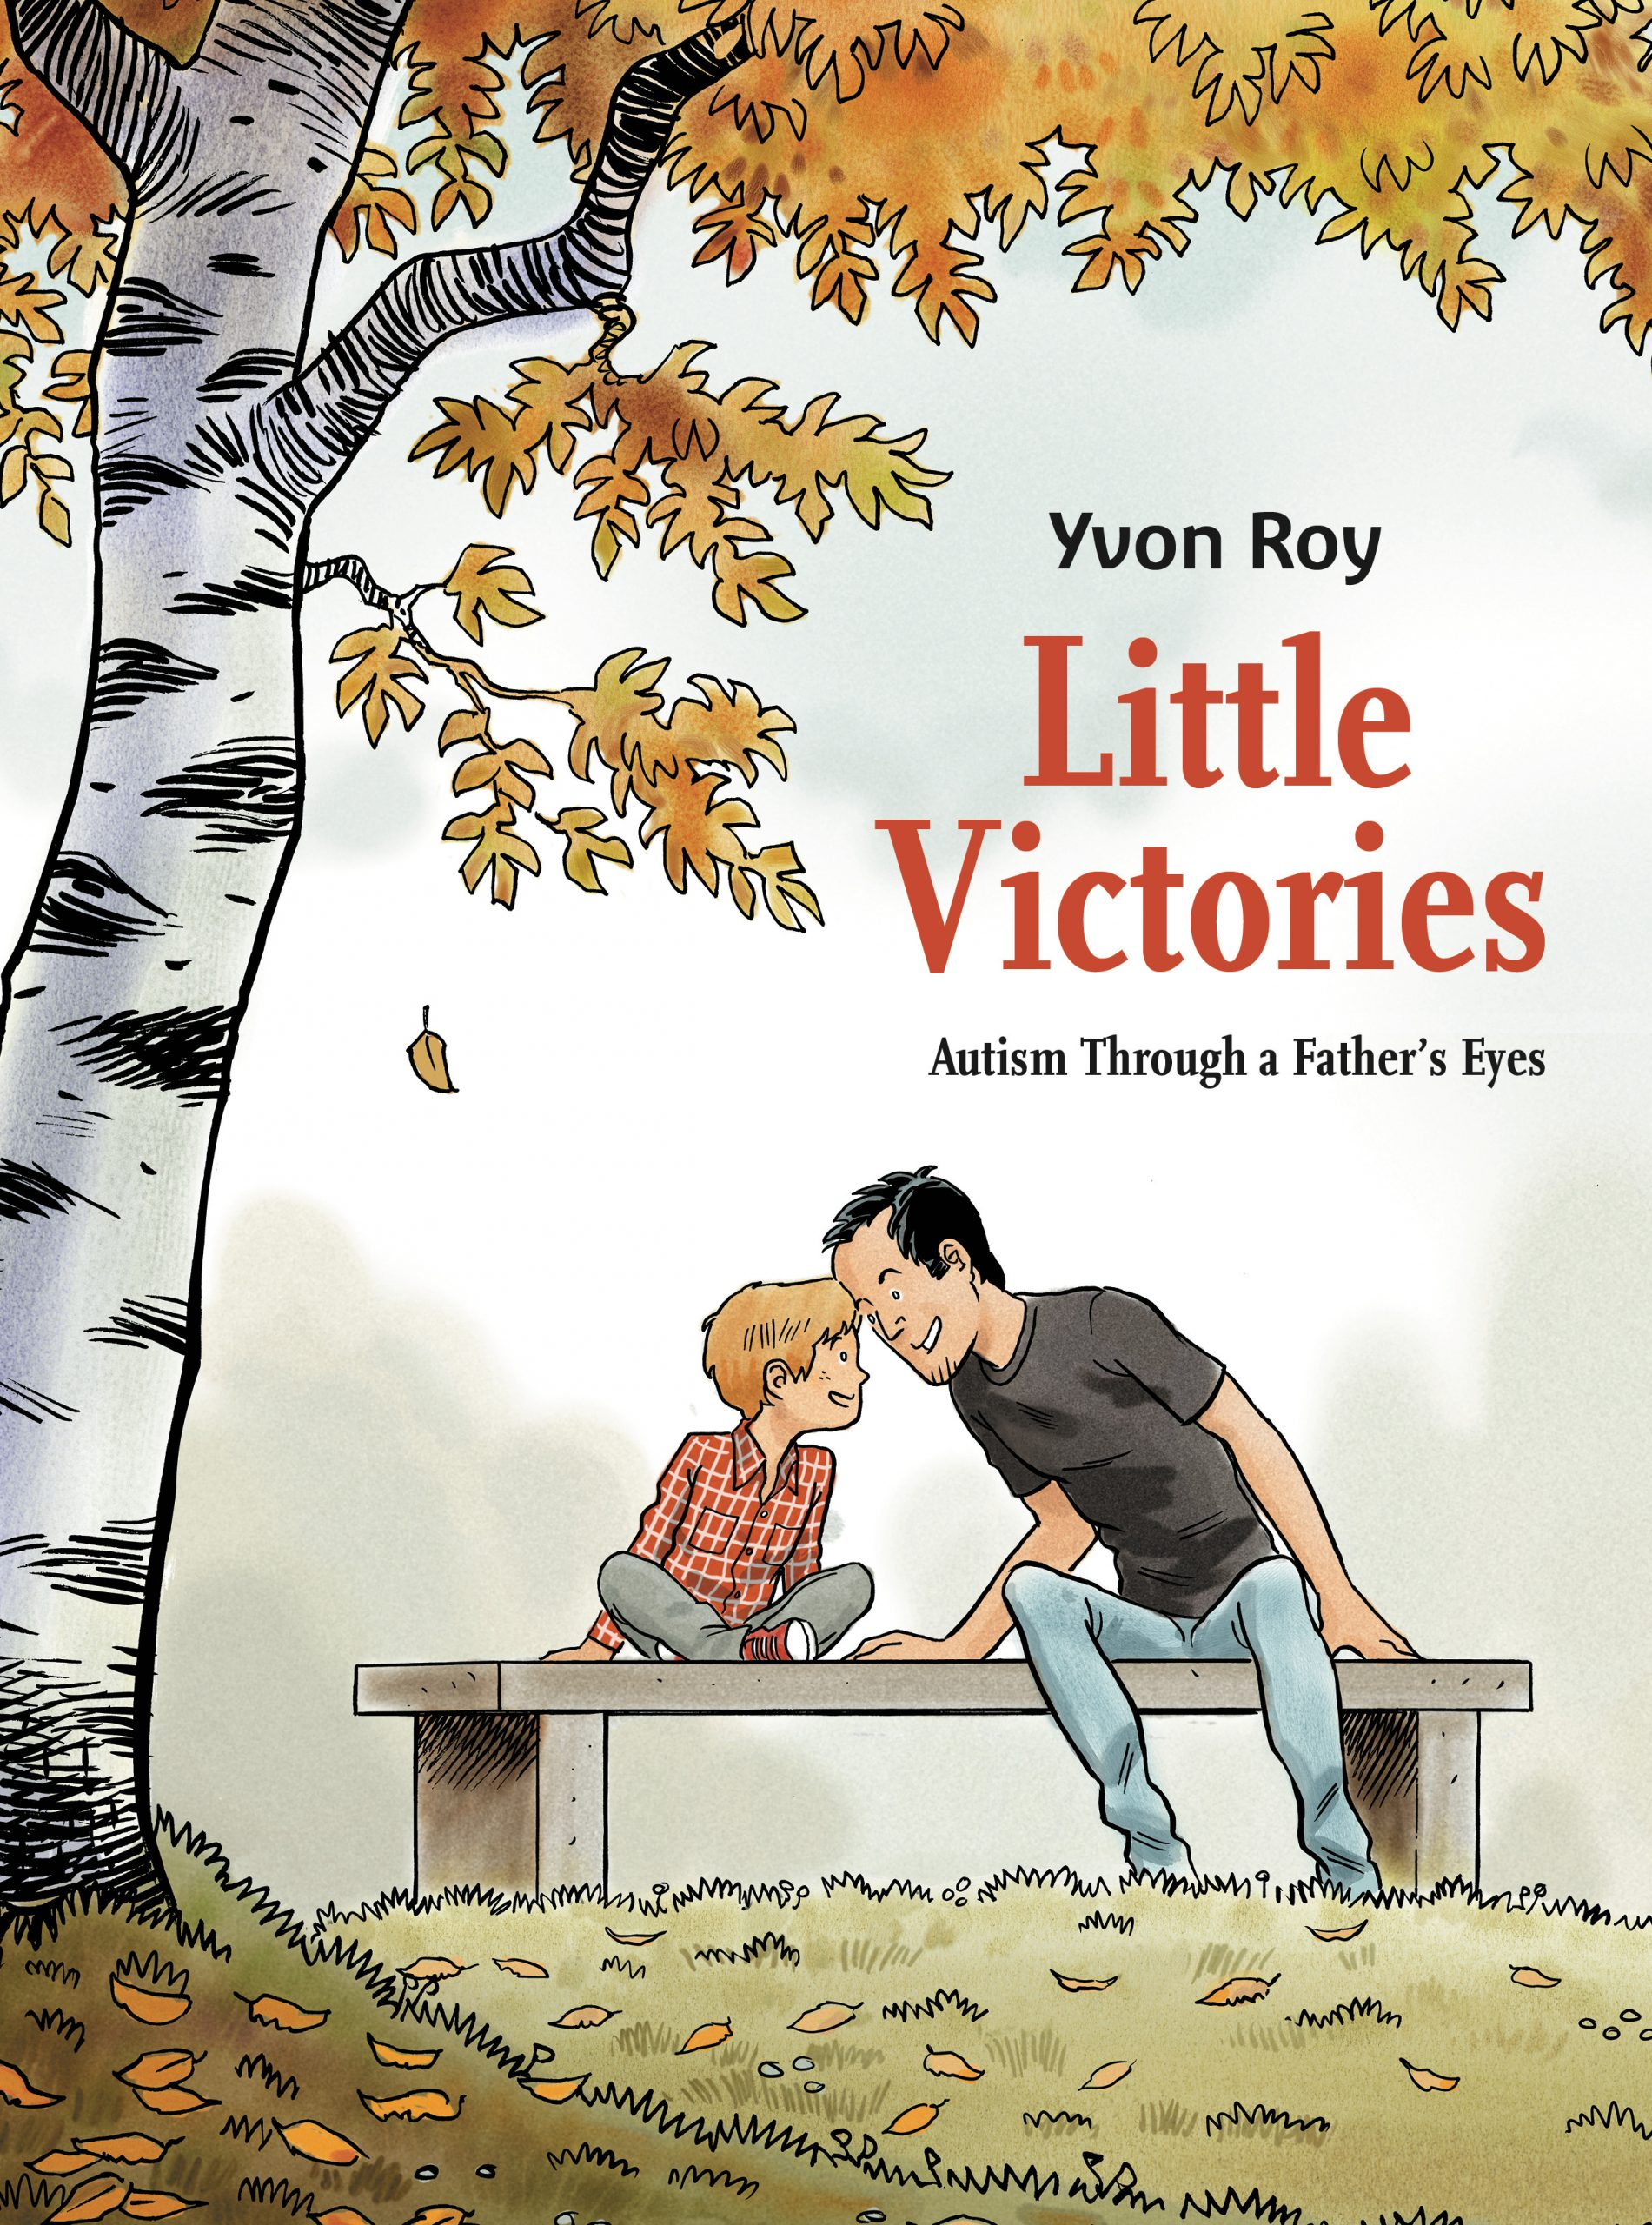 Little Victories - Autism Through a Father's Eyes